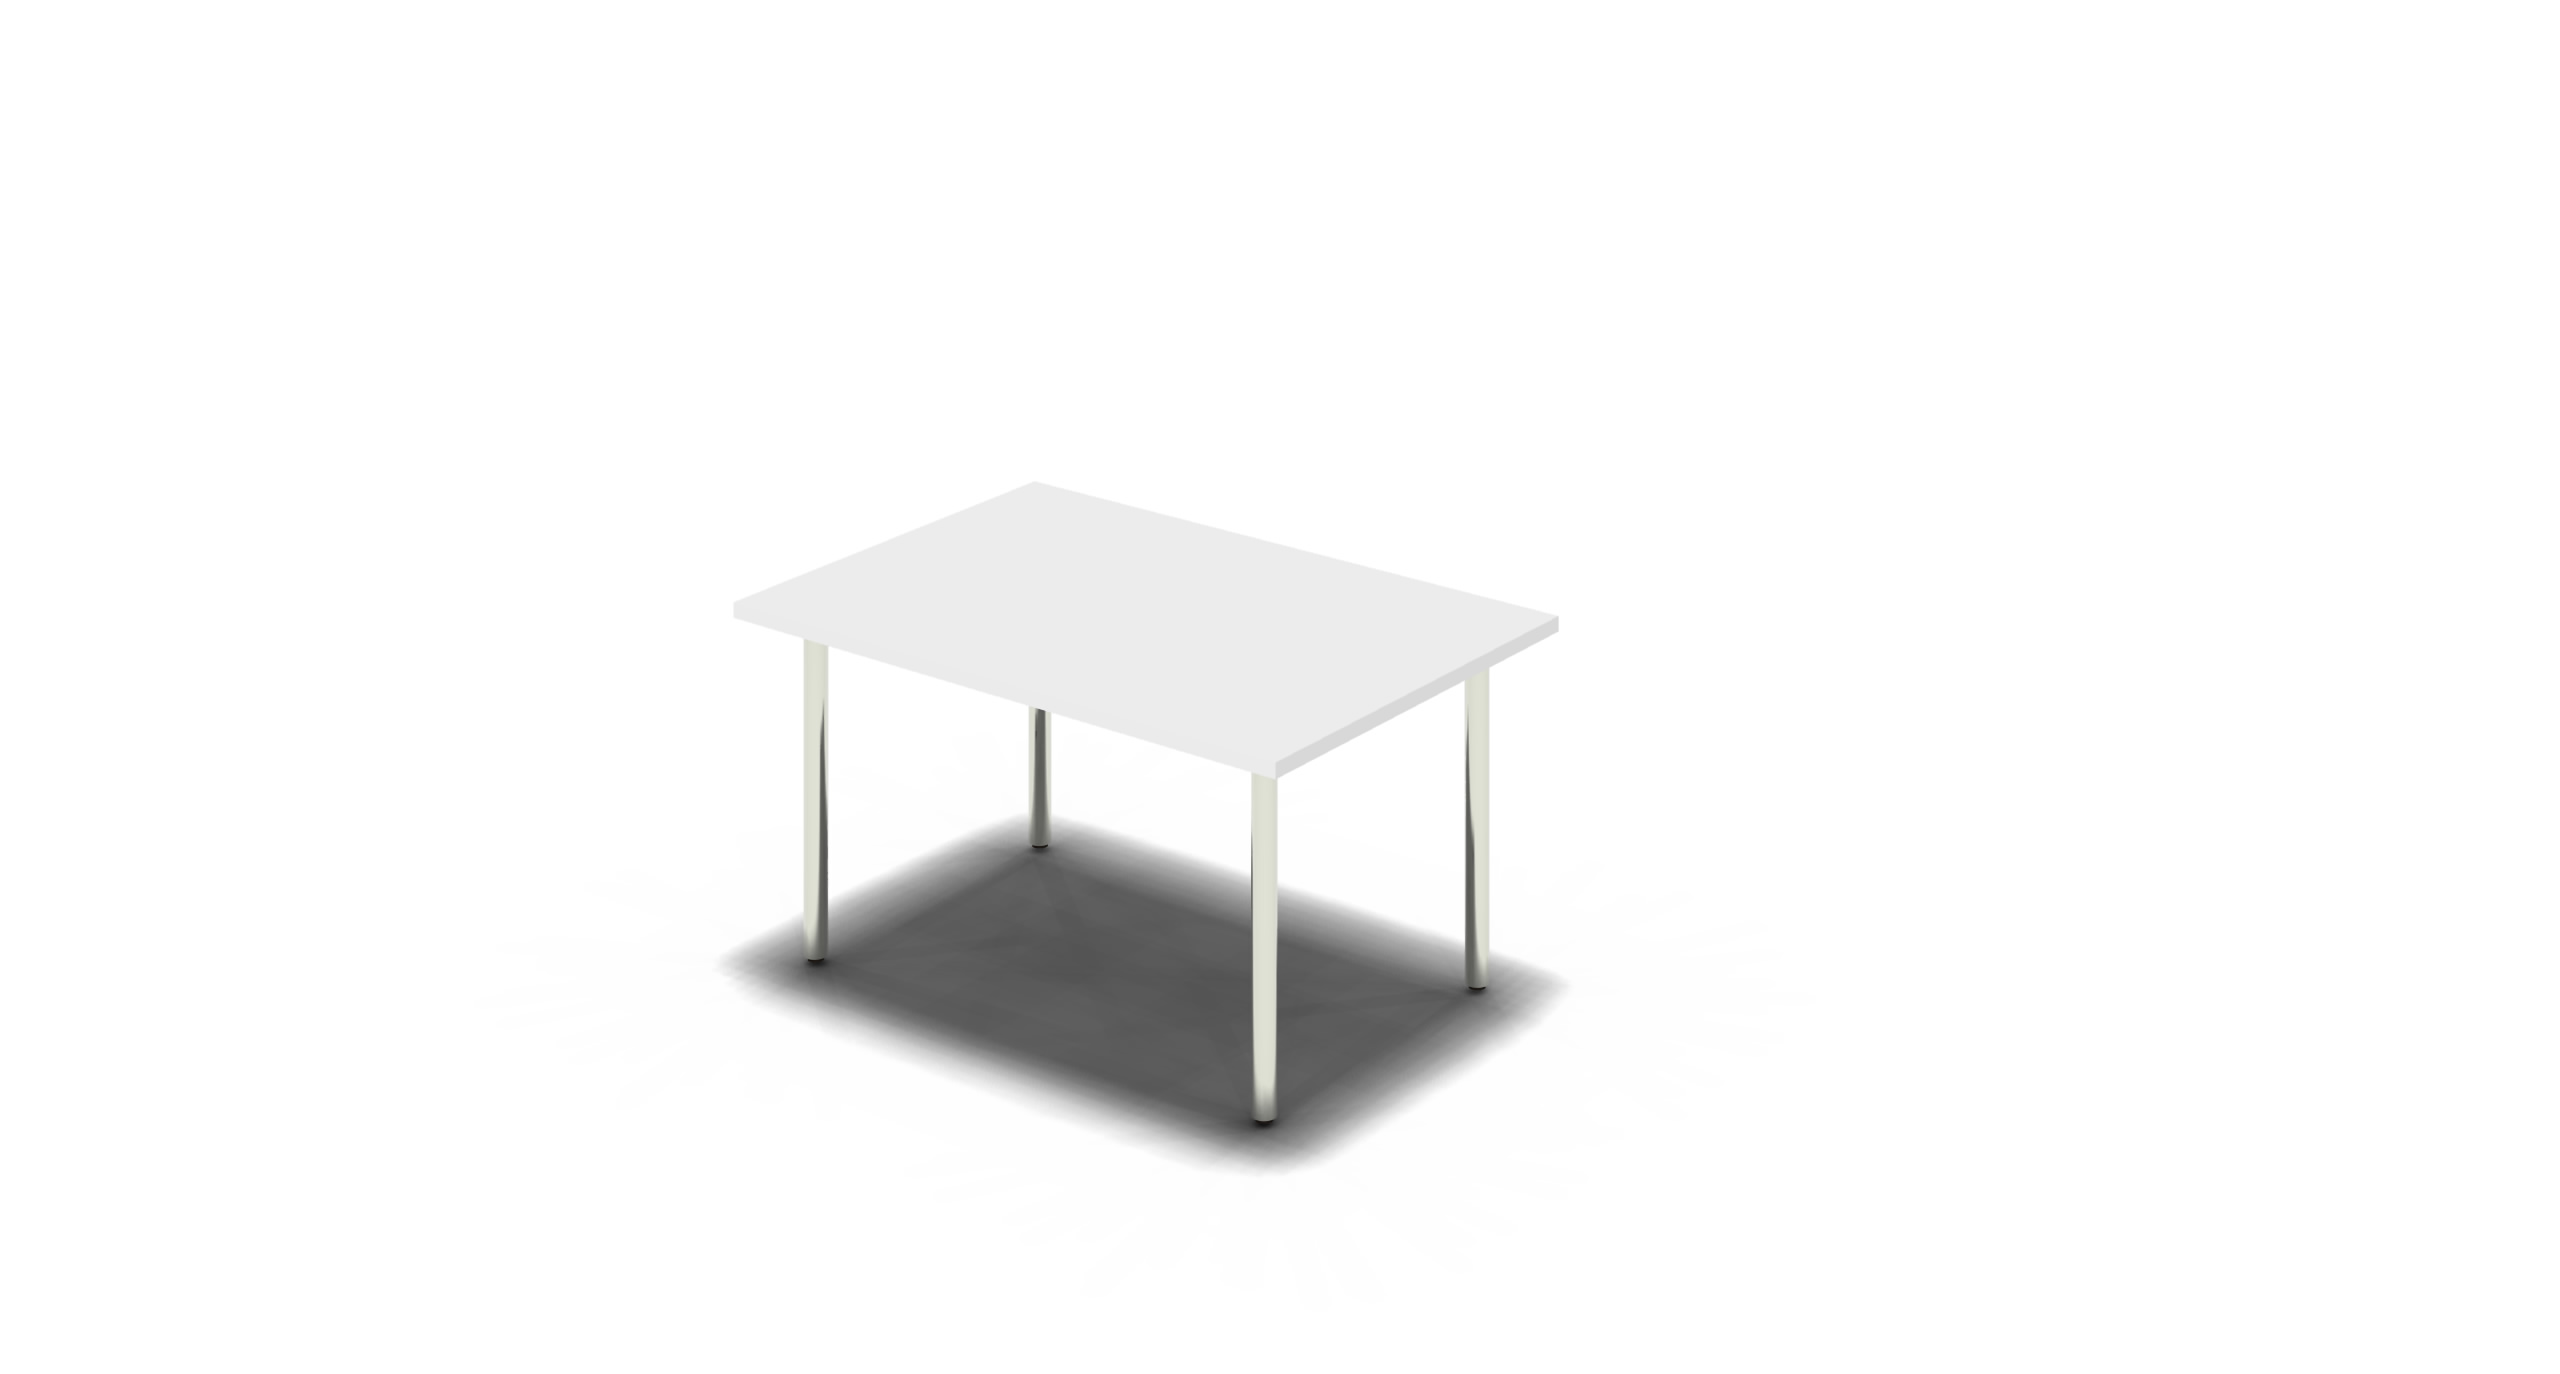 Table_Round_1200x800_Chrome_White_noOption